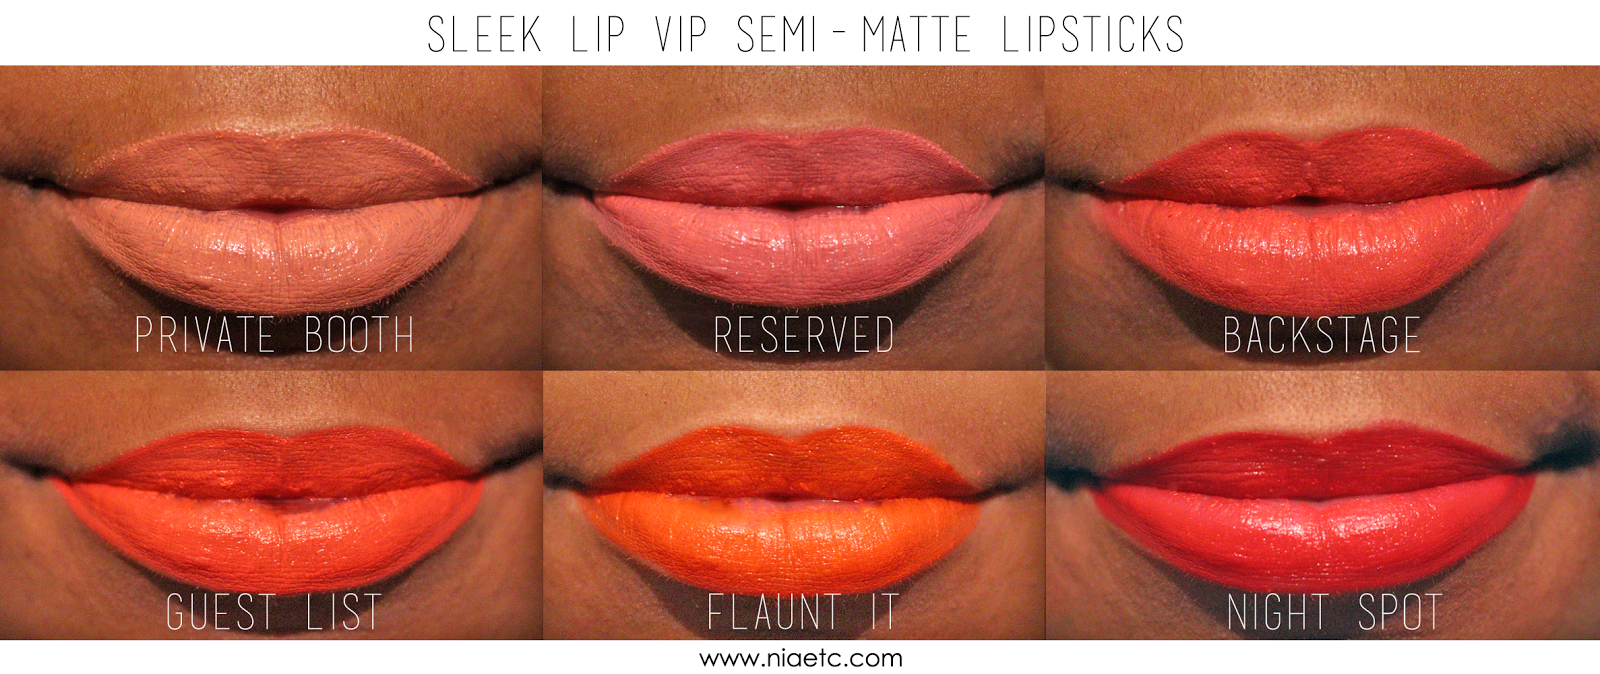 Sleek MakeUp Semi Matte Lipstick Lip VIP Lip Swatches